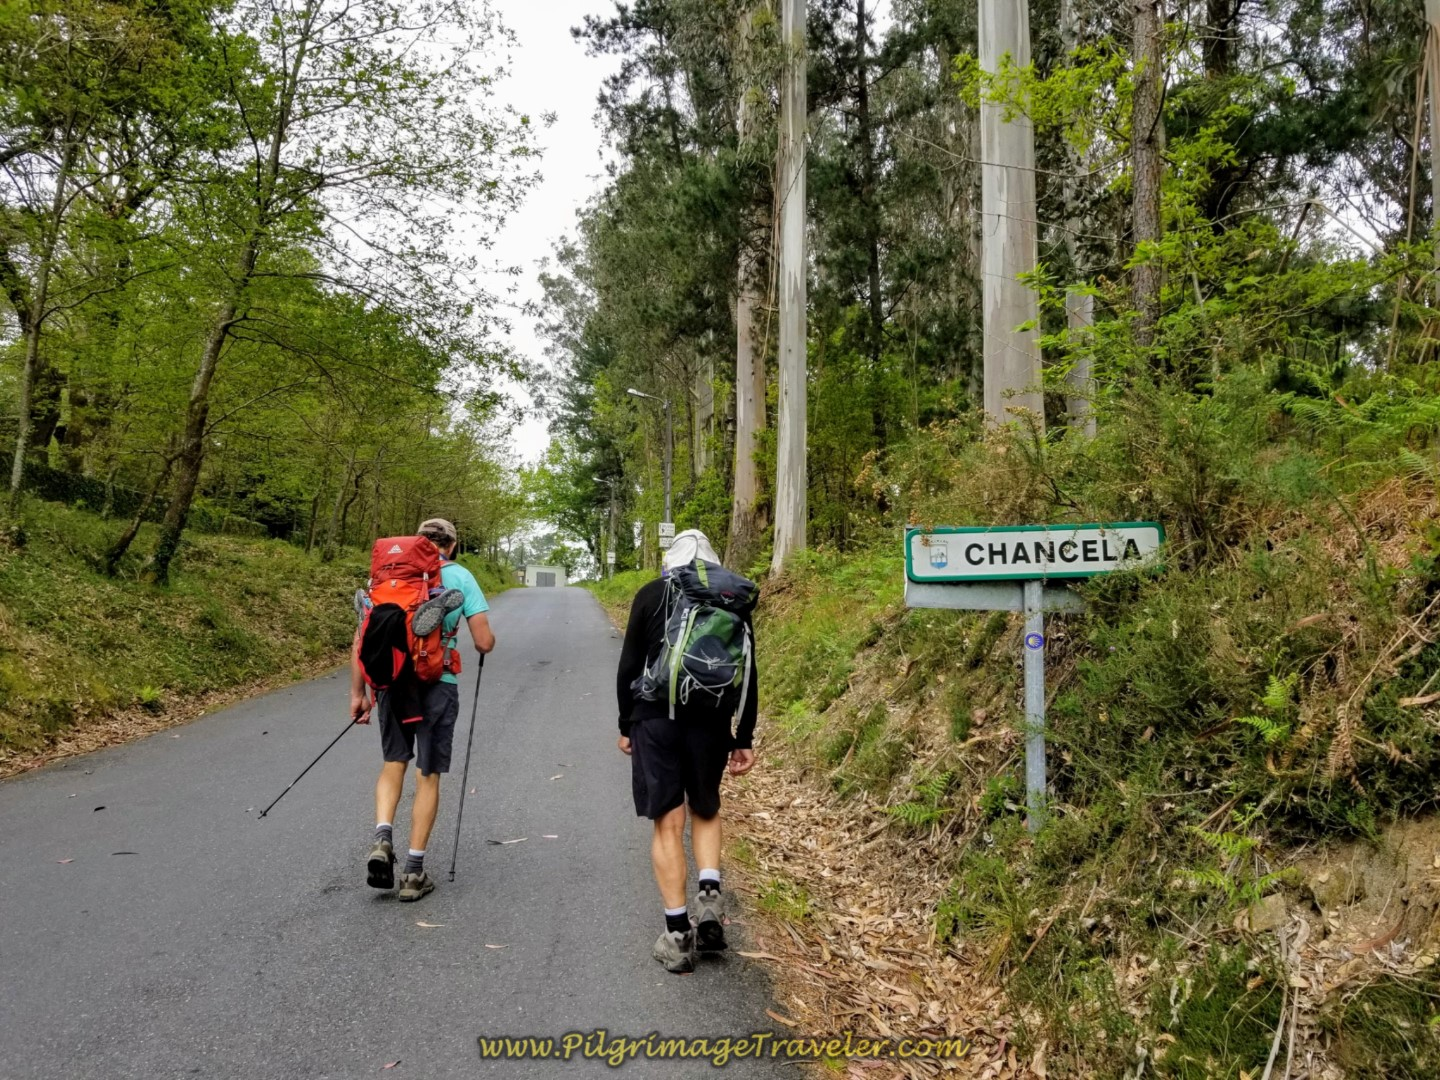 Rich and Rob Continue Uphill Entering Chancela on day one of the Finisterre Way